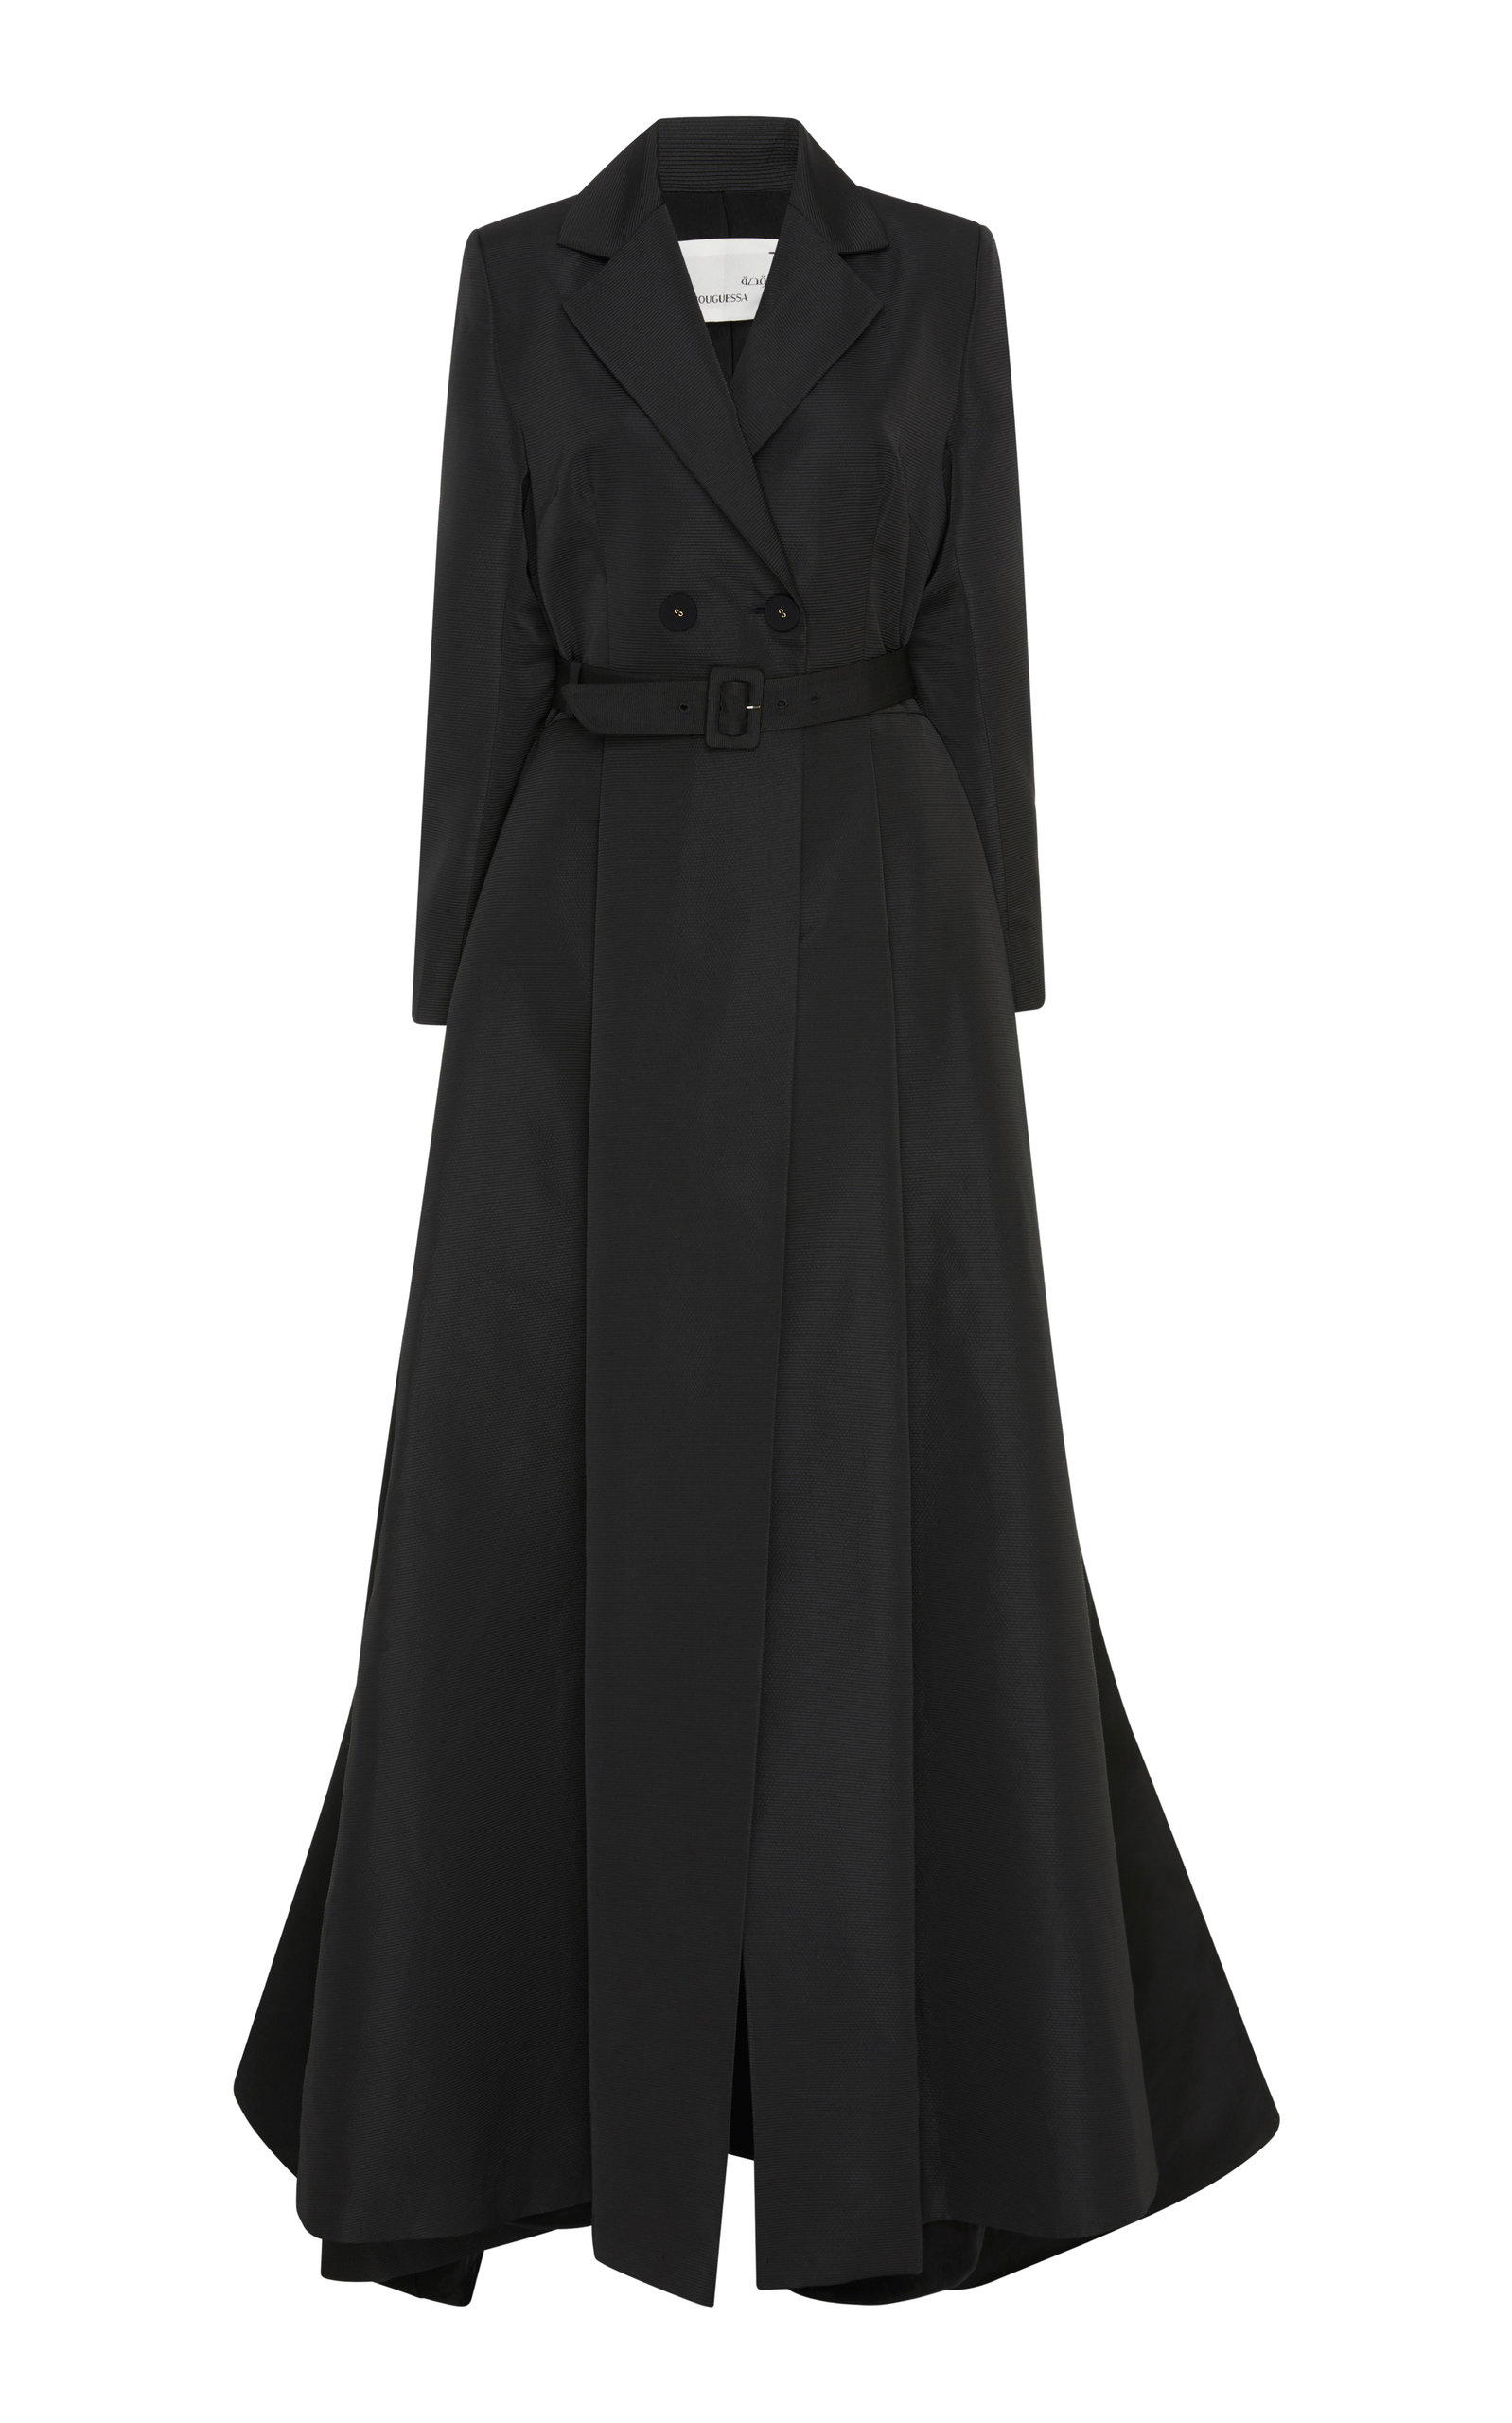 BOUGUESSA Belted Taffeta Coat Gown in Black